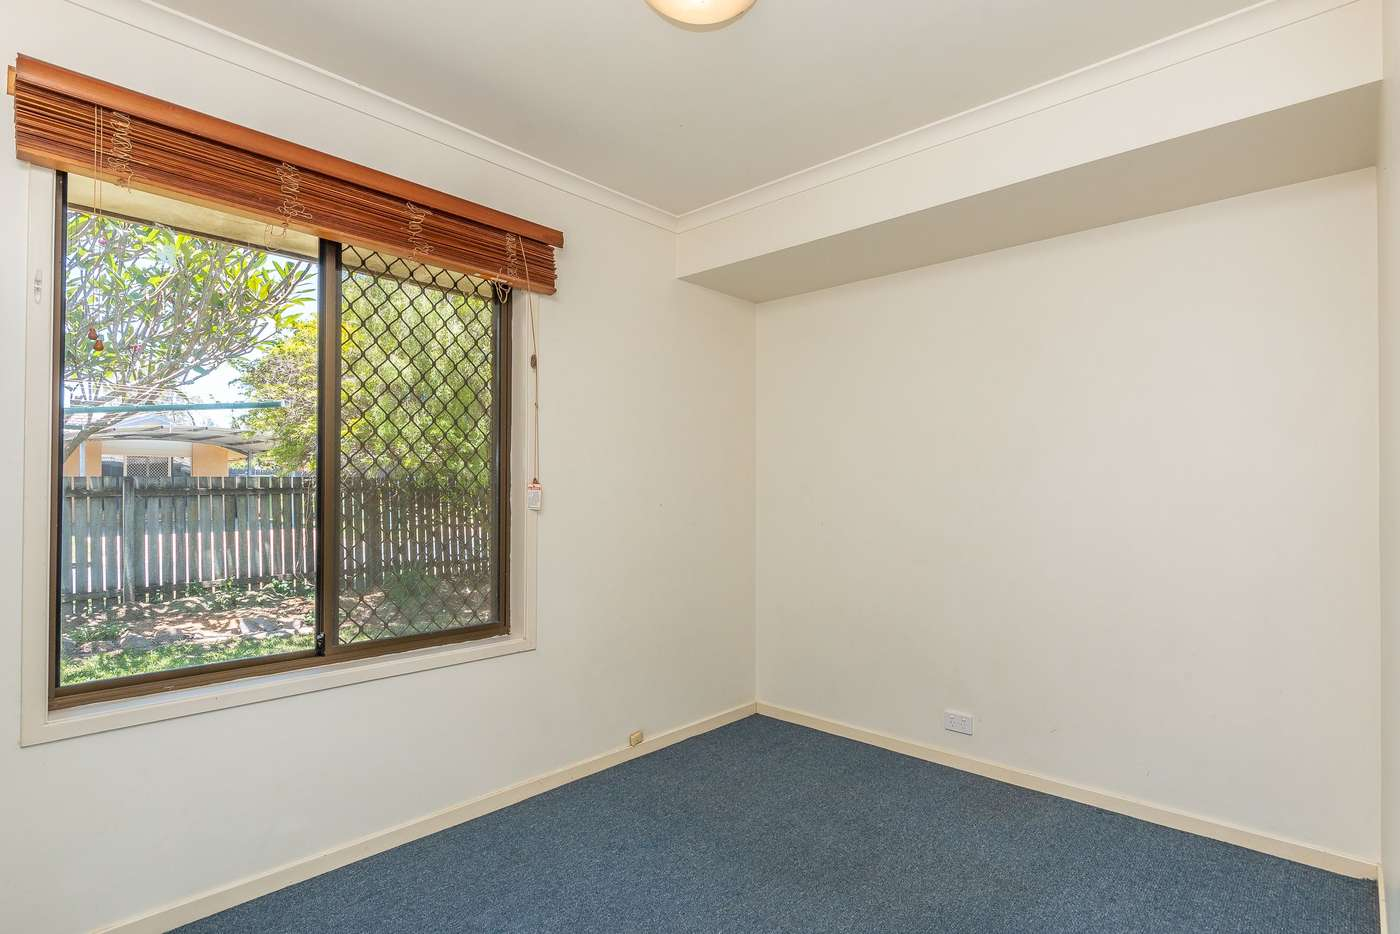 Sixth view of Homely house listing, 20 Normanby Road, Murrumba Downs QLD 4503